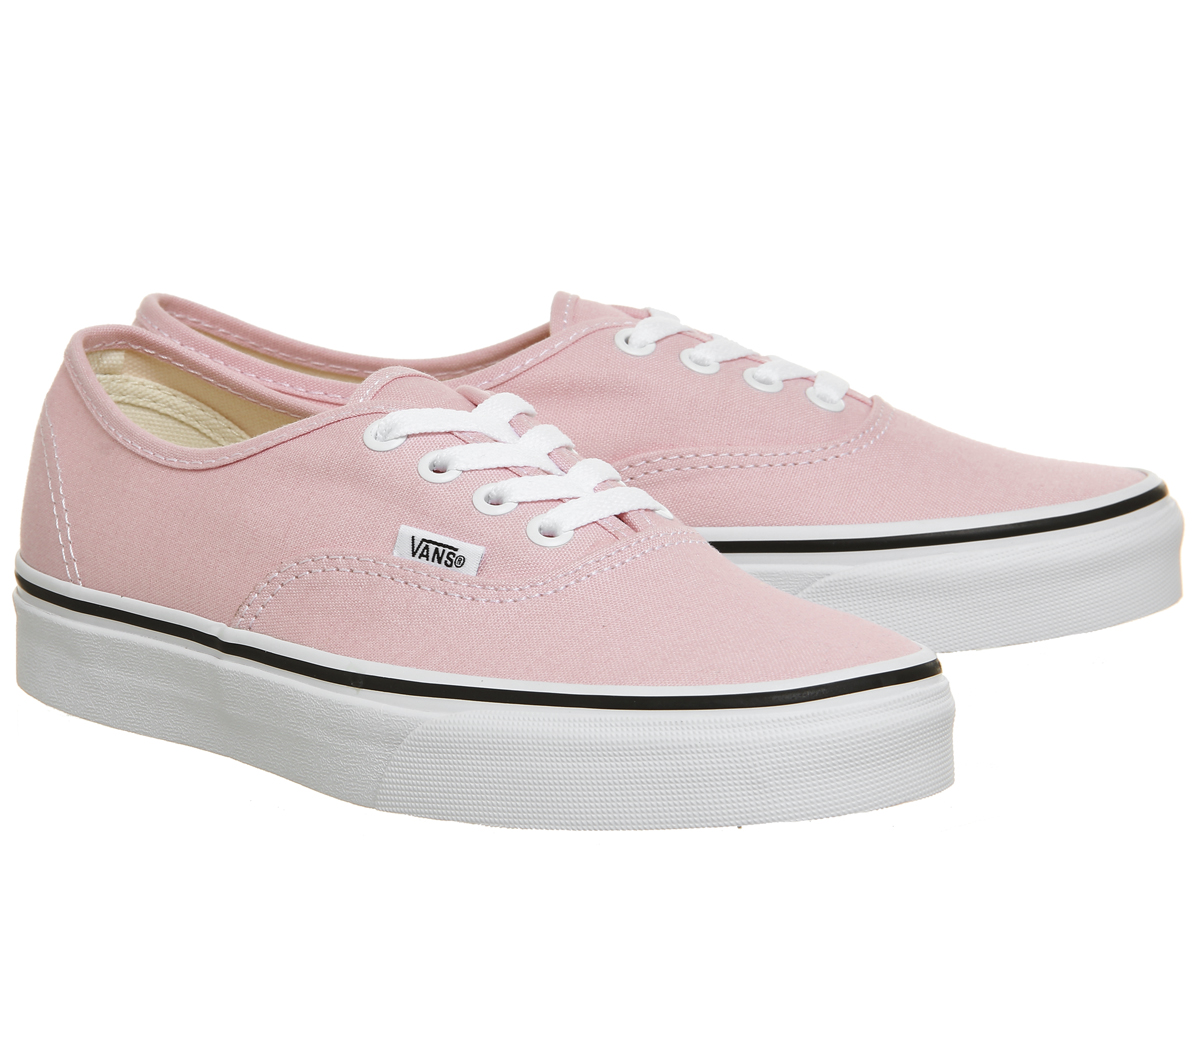 7699eb51cc0b Womens Vans Authentic Trainers CHALK PINK TRUE WHITE Trainers Shoes ...